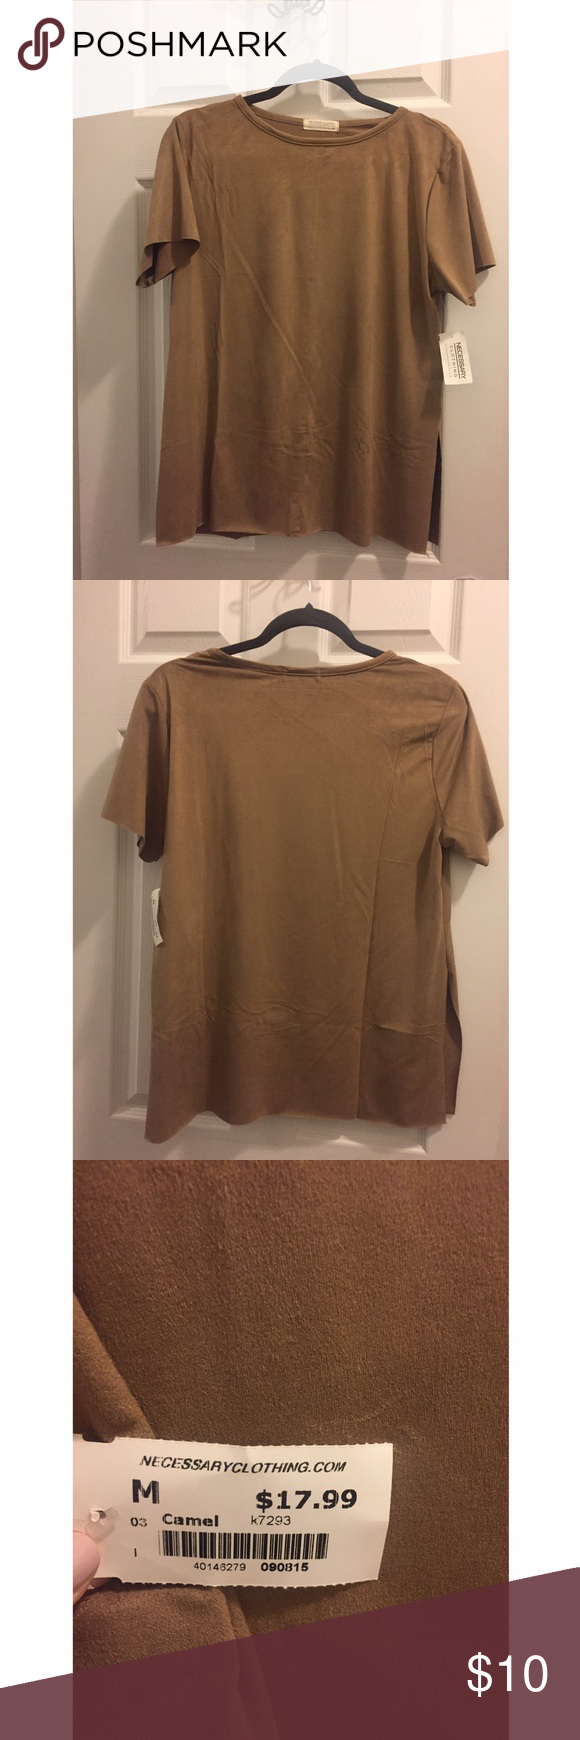 NWT Camel suede shirt Faux suede, camel color, short sleeve, sides have slits about 1/3 of the way up. Never worn! Necessary Clothing Tops Tees - Short Sleeve